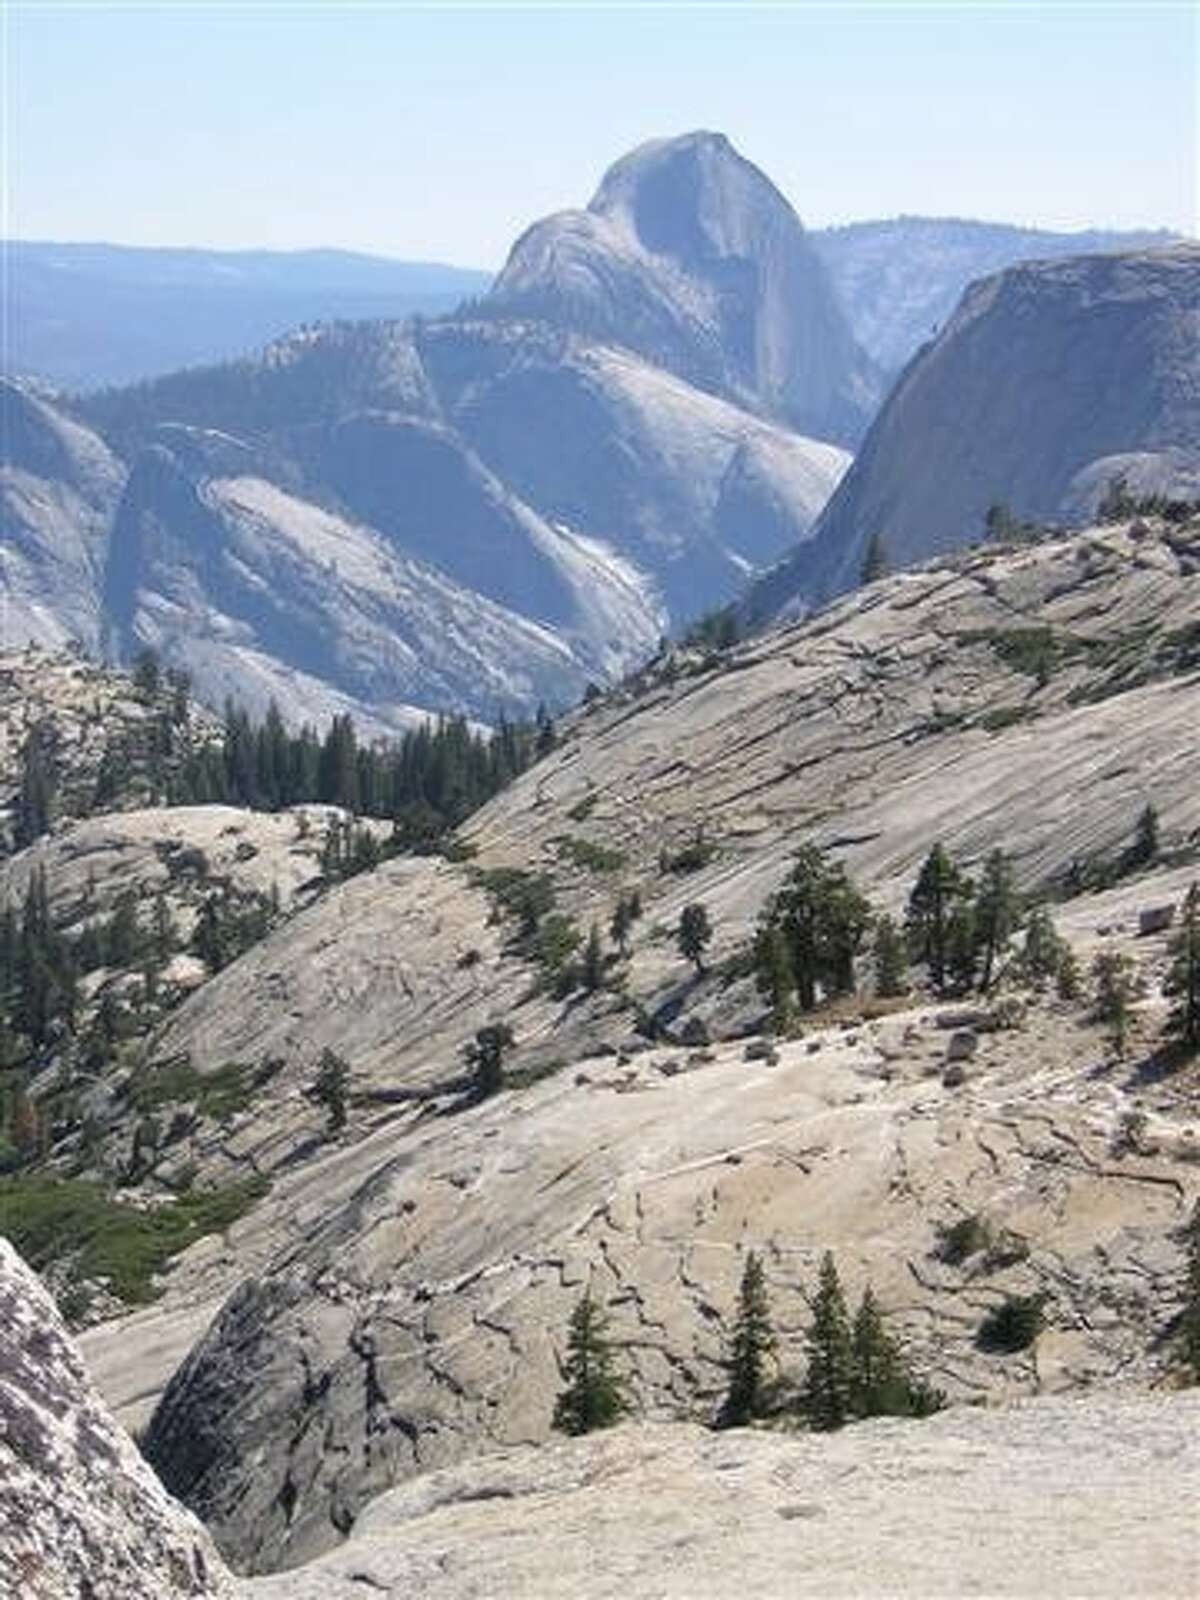 Yosemite's high country, including Tenaya Peak and Clouds Rest, is a breath of fresh air and a sure escape from the crowds at Half Dome. To reach Clouds Rest, often called the